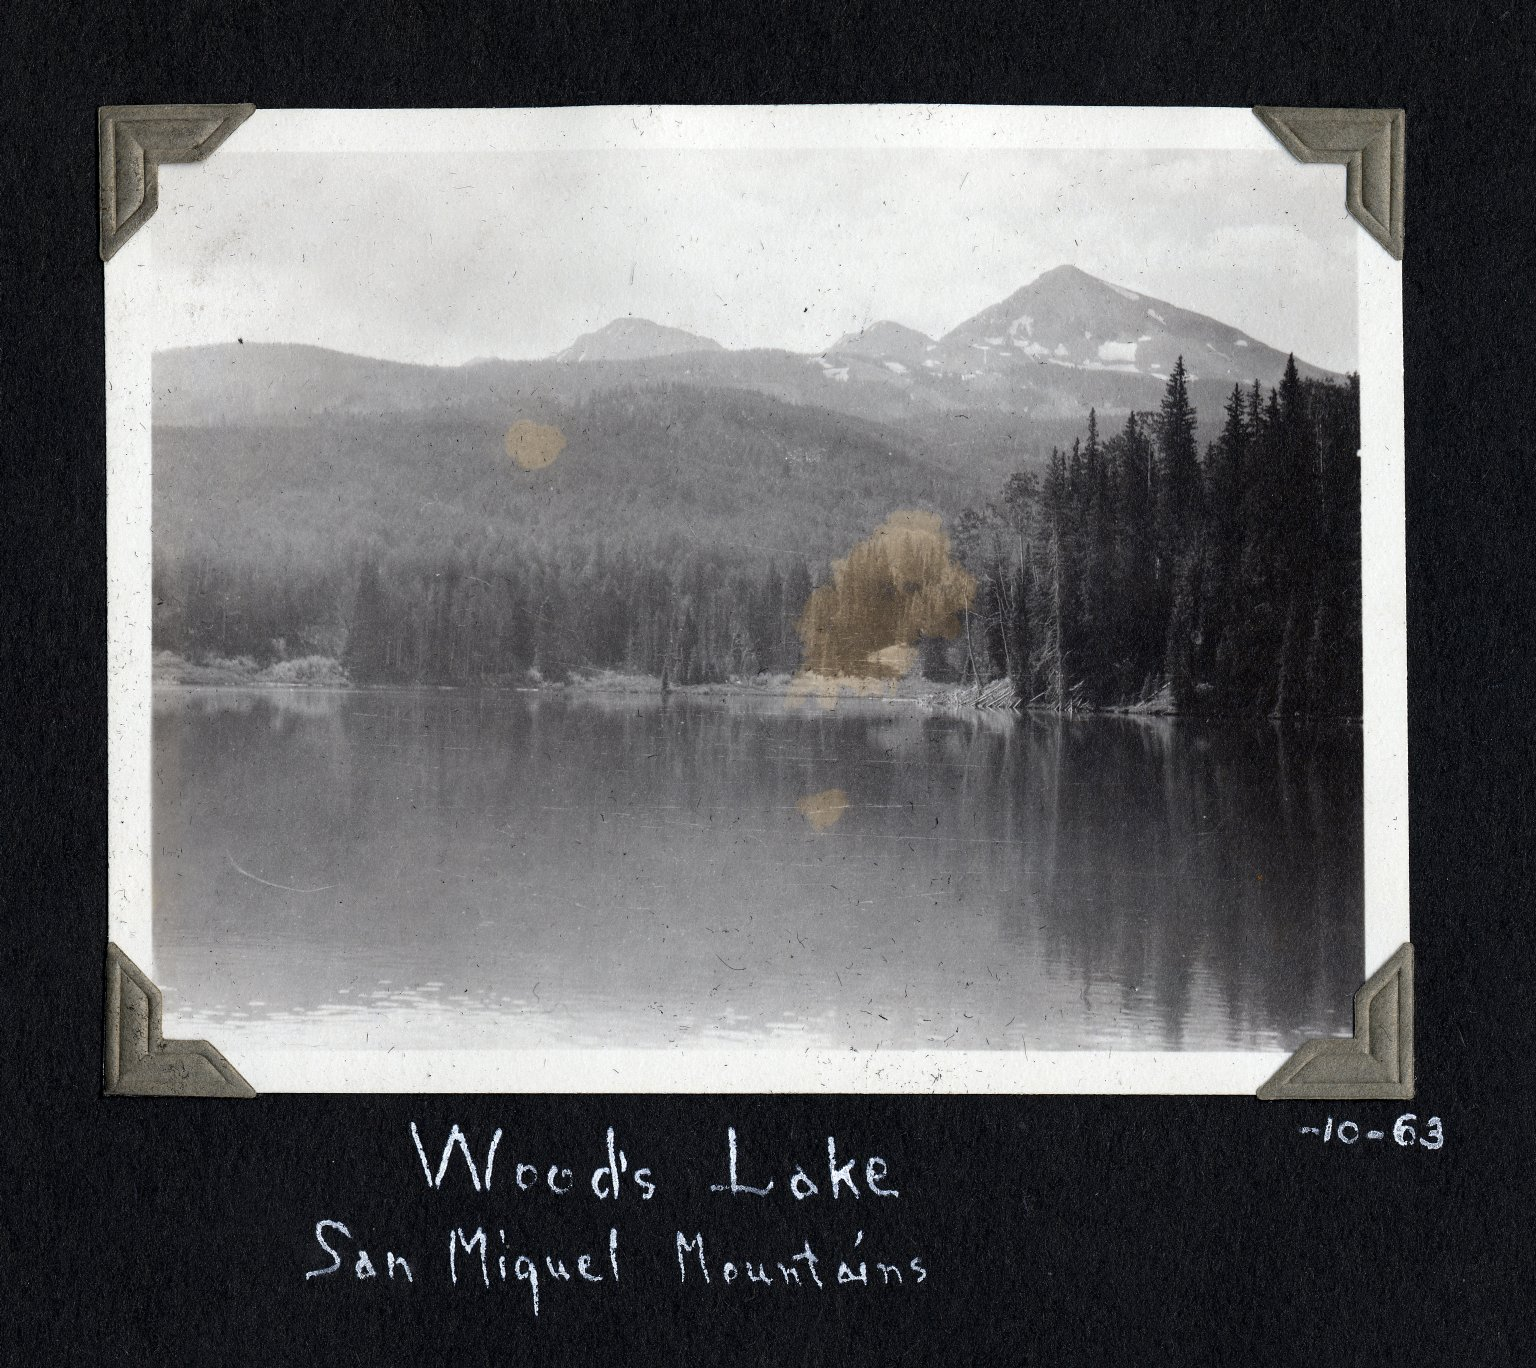 Woods Lake, San Miguel Mountains